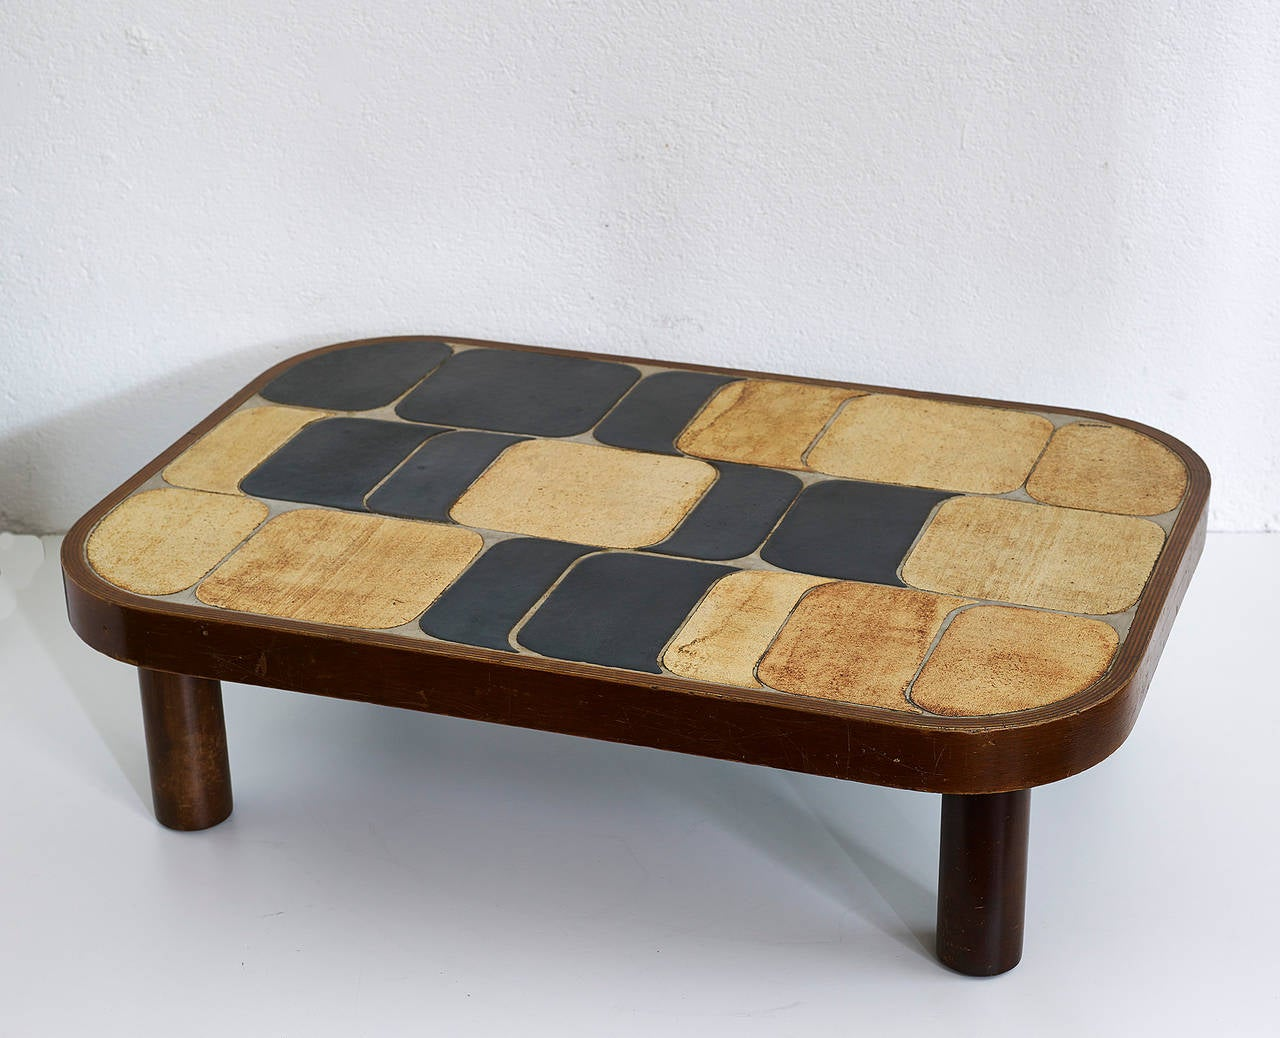 Shogun Coffee Table by Roger Capron For Sale at 1stdibs -> Table Basse Capron